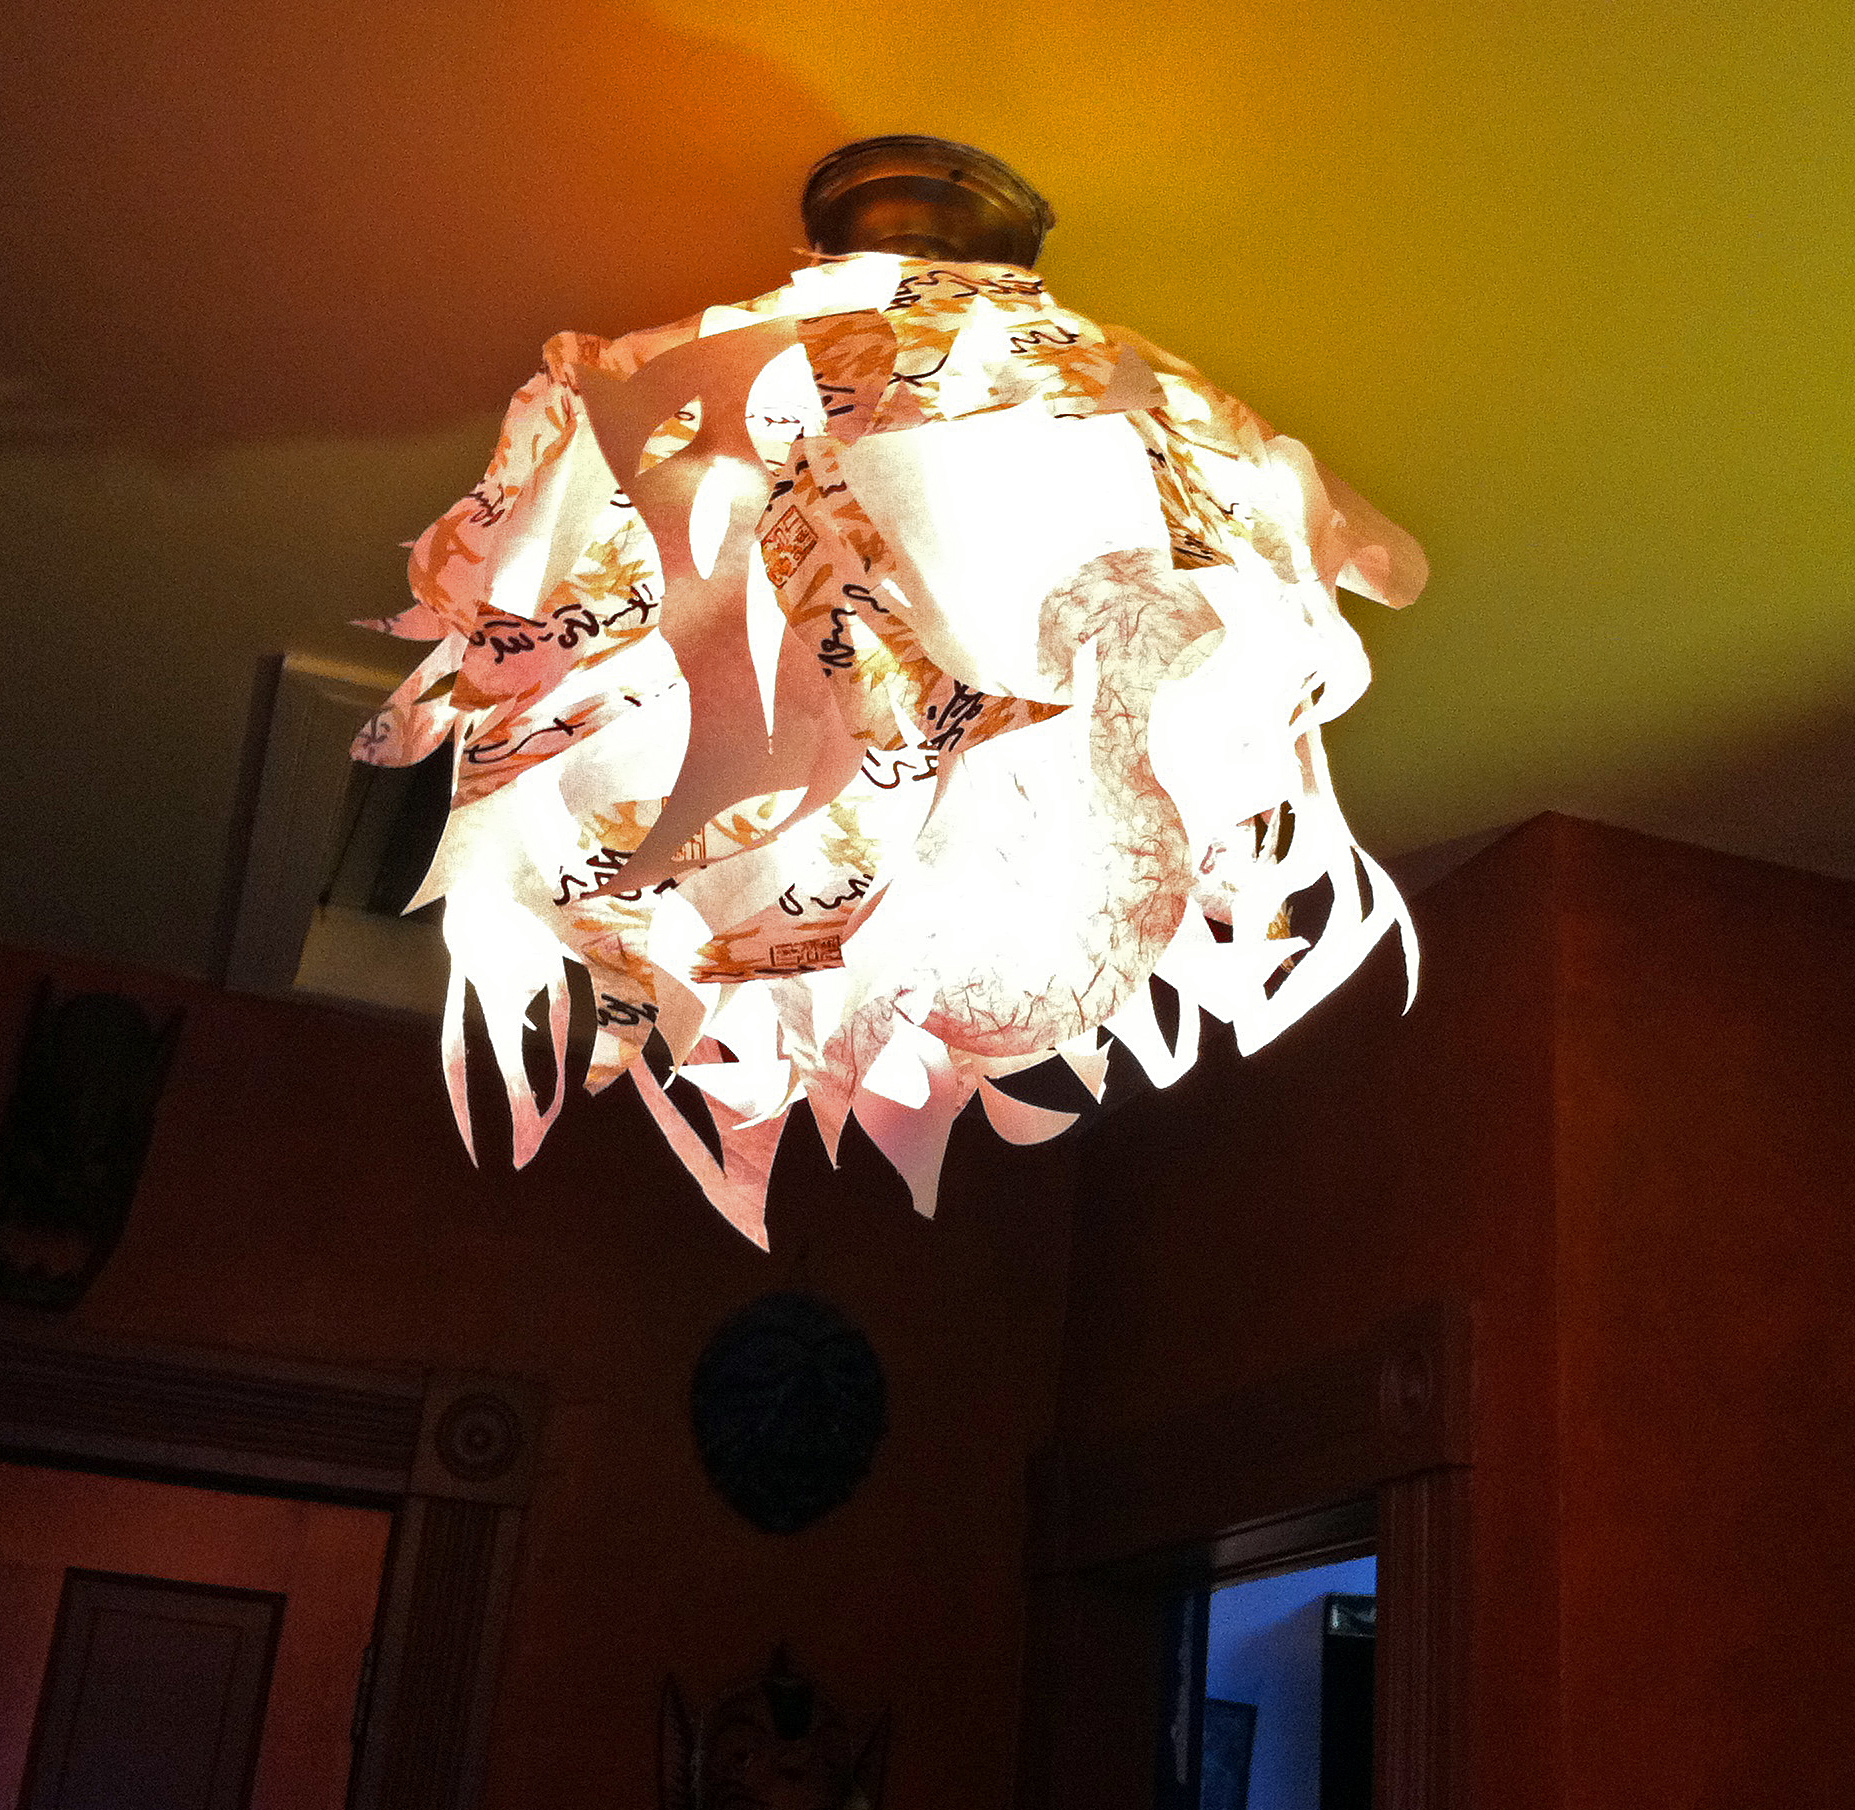 funky artsy fast paper hanging ceiling light cover the year of funky artsy fast paper light lightafter2